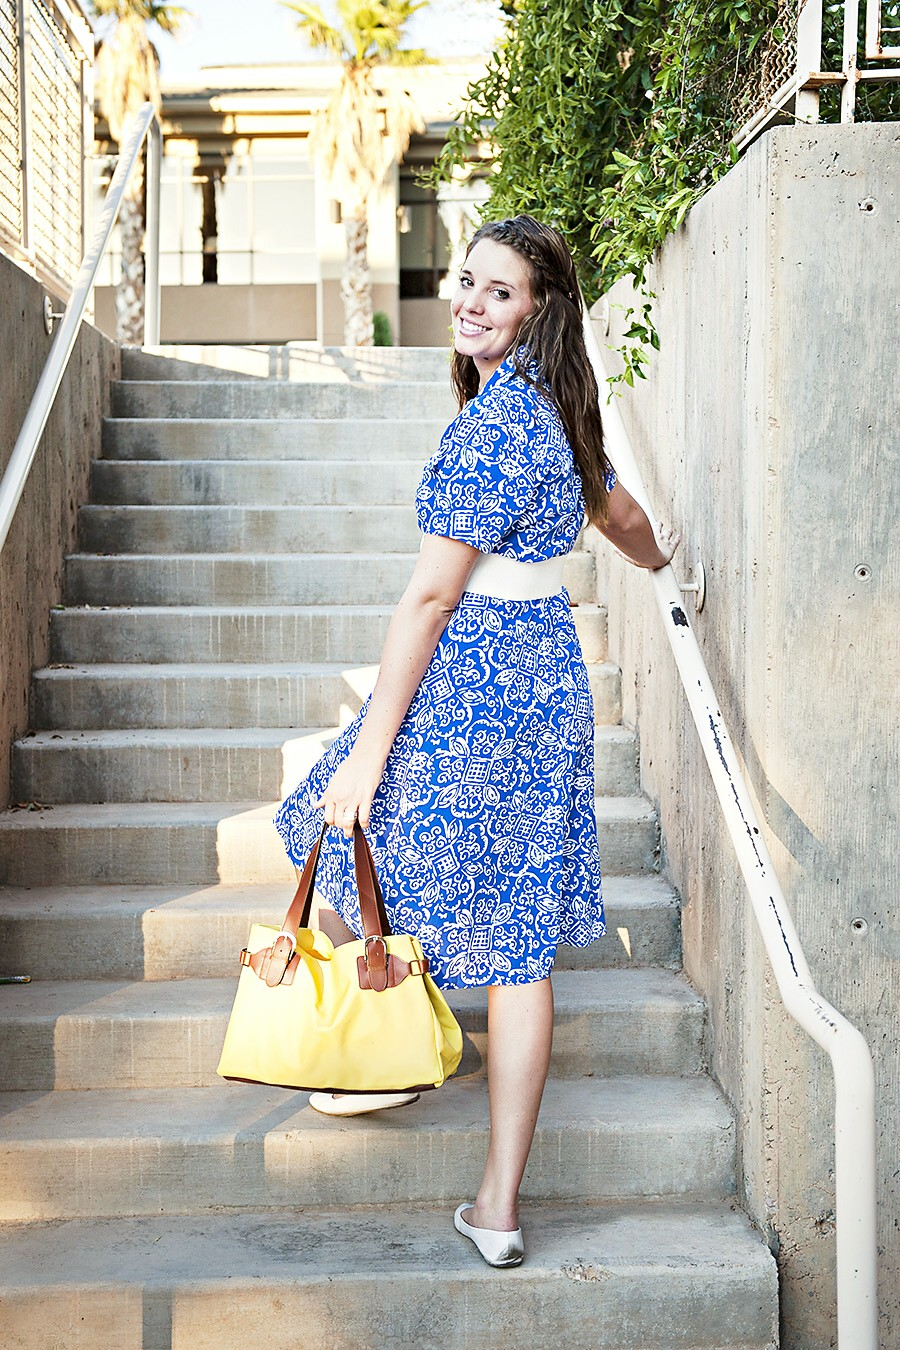 Blue Dress, Yellow Purse